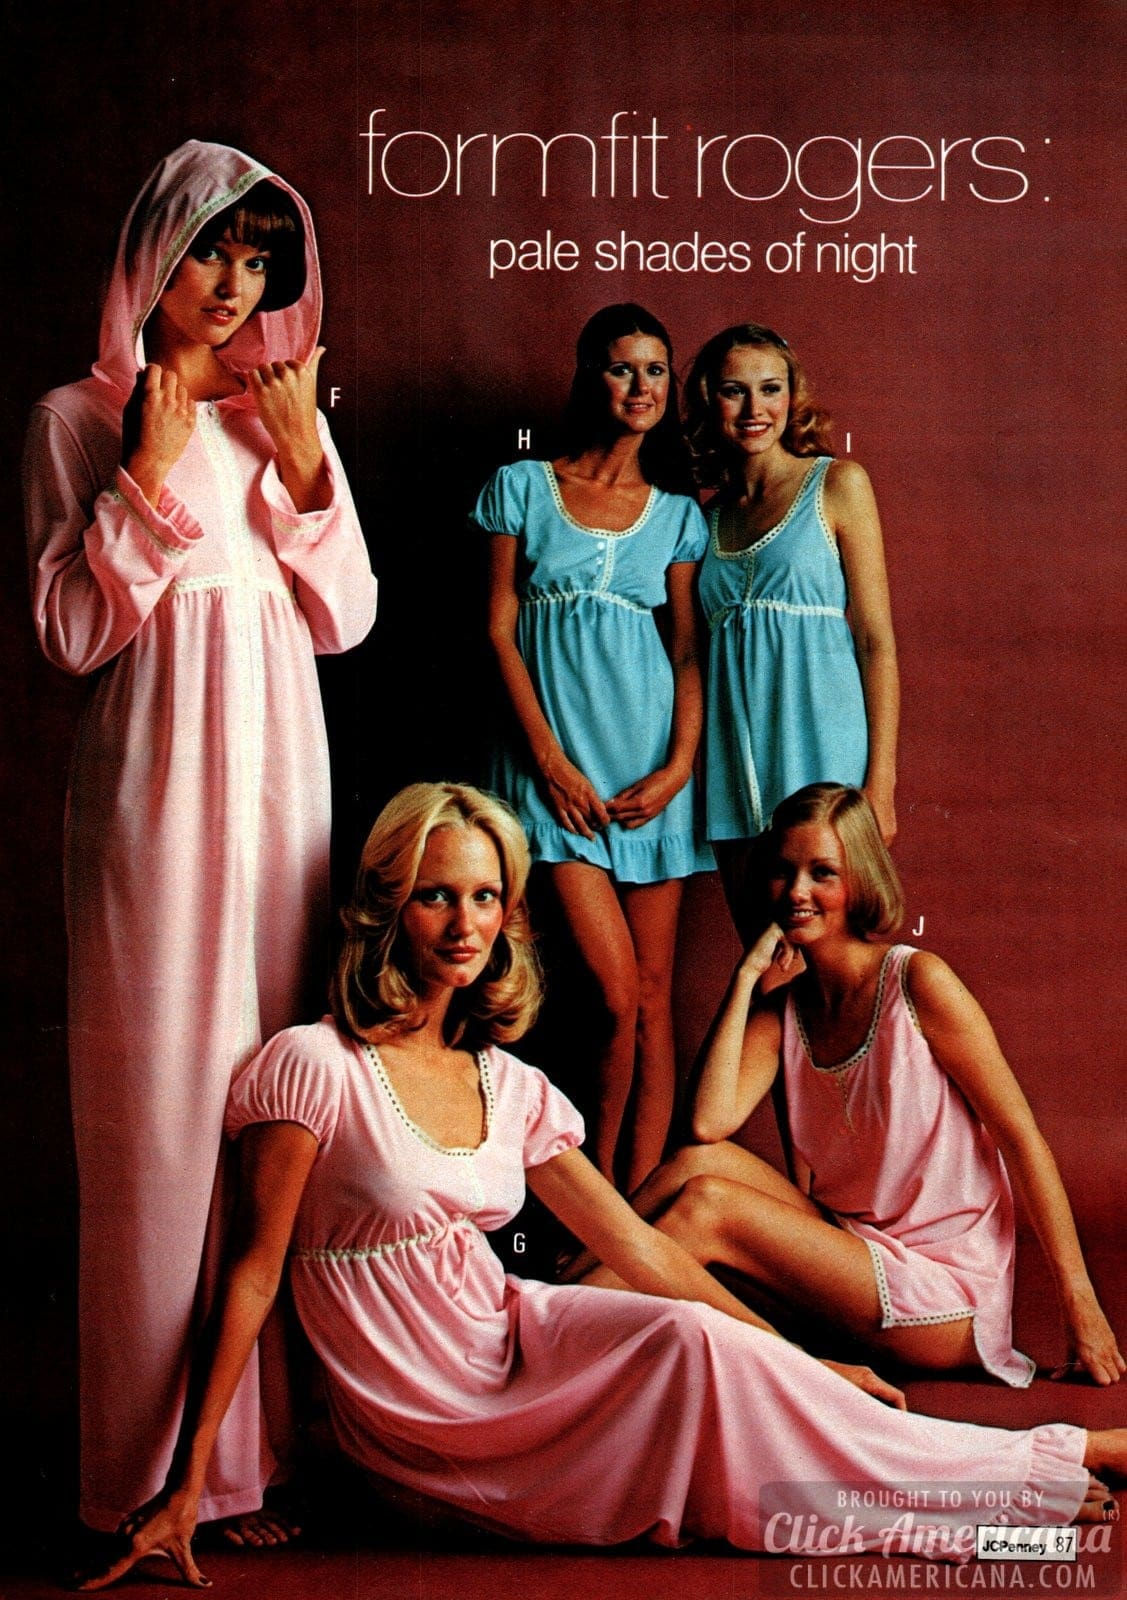 Retro 70s sleepwear for women (7)